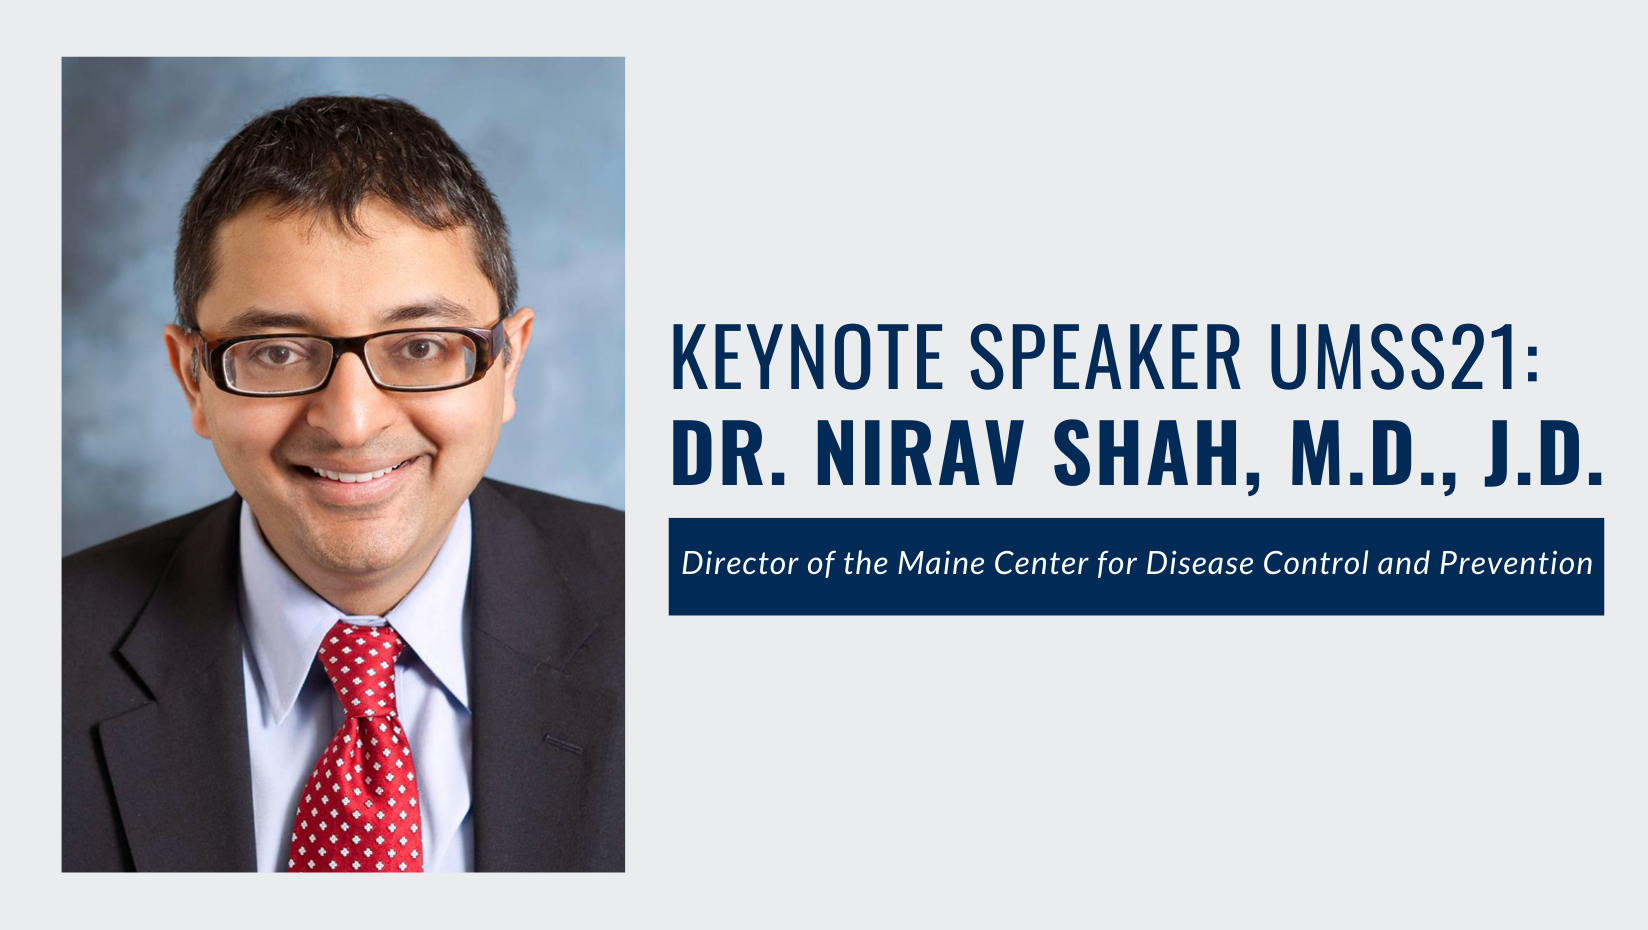 Image of Dr. Nirav Shah, the head of Maine CDC. He is a keynote speaker during the UMaine Student Symposium 2021.